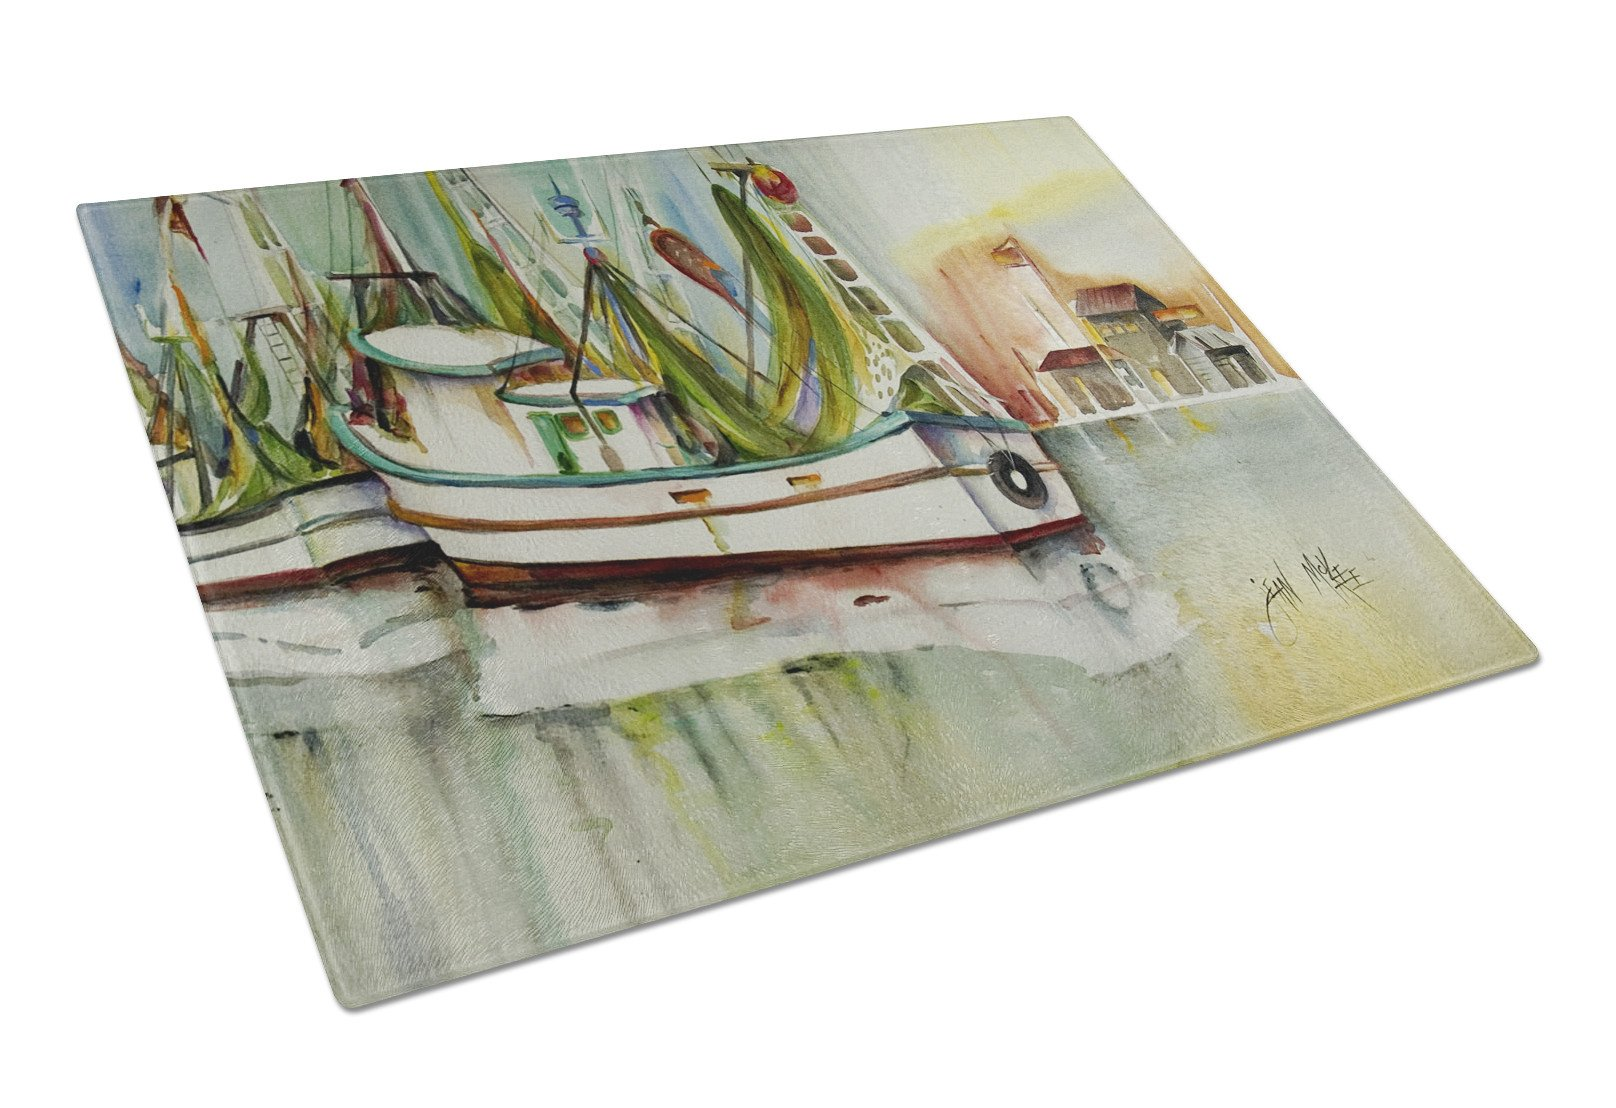 Ocean Springs Shrimper Glass Cutting Board Large JMK1068LCB by Caroline's Treasures